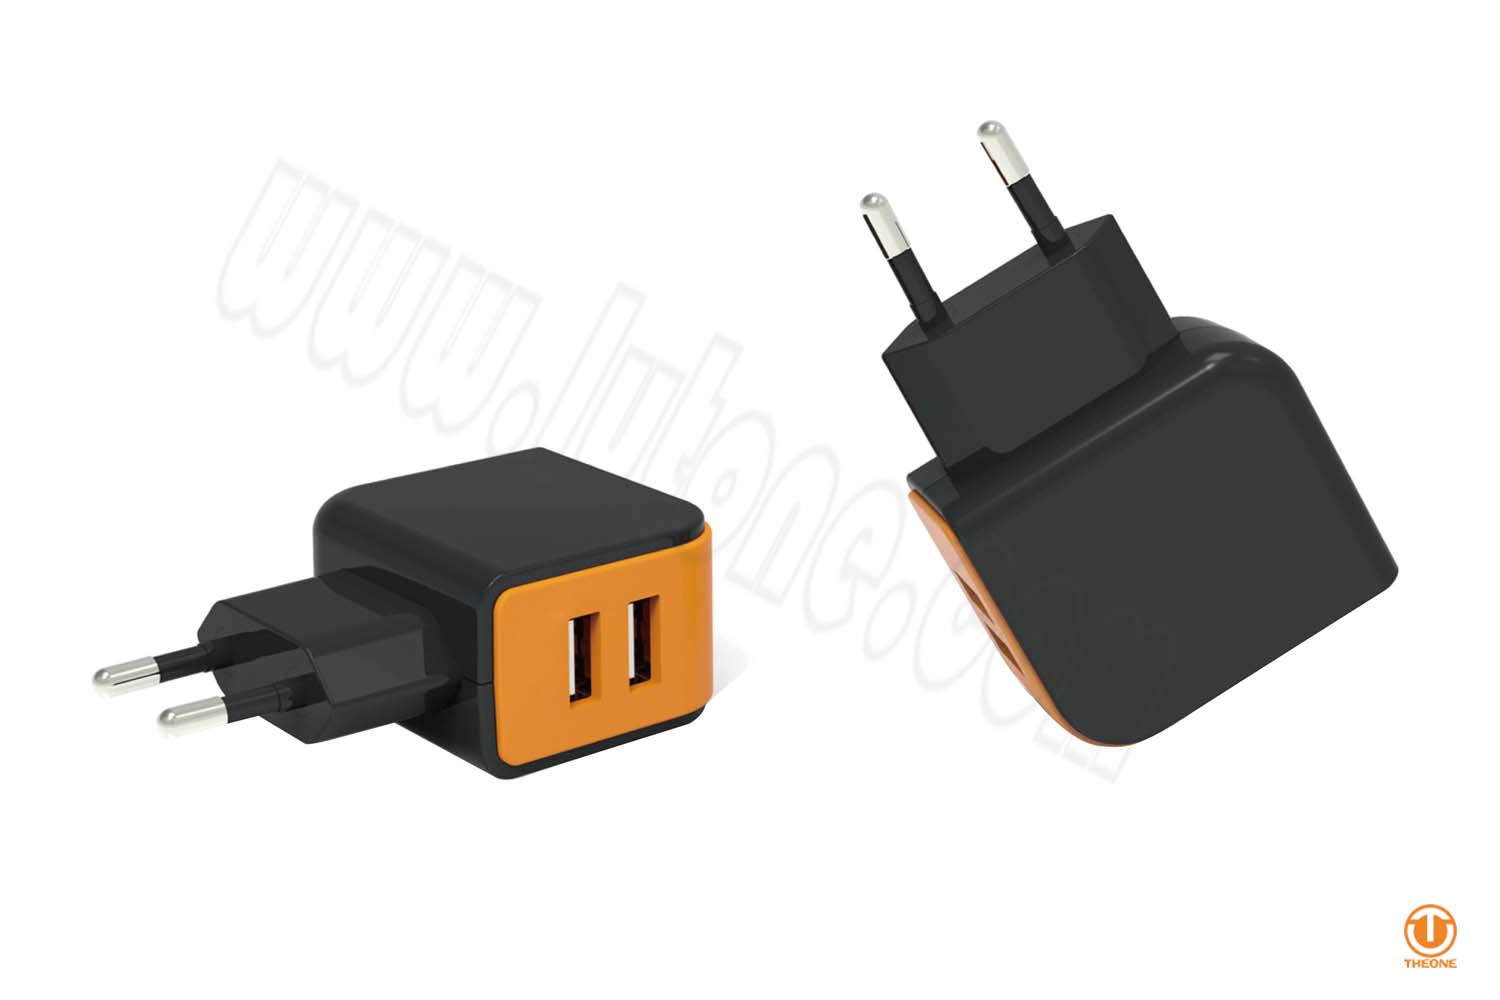 tc02b3-1 dual usb wall charger